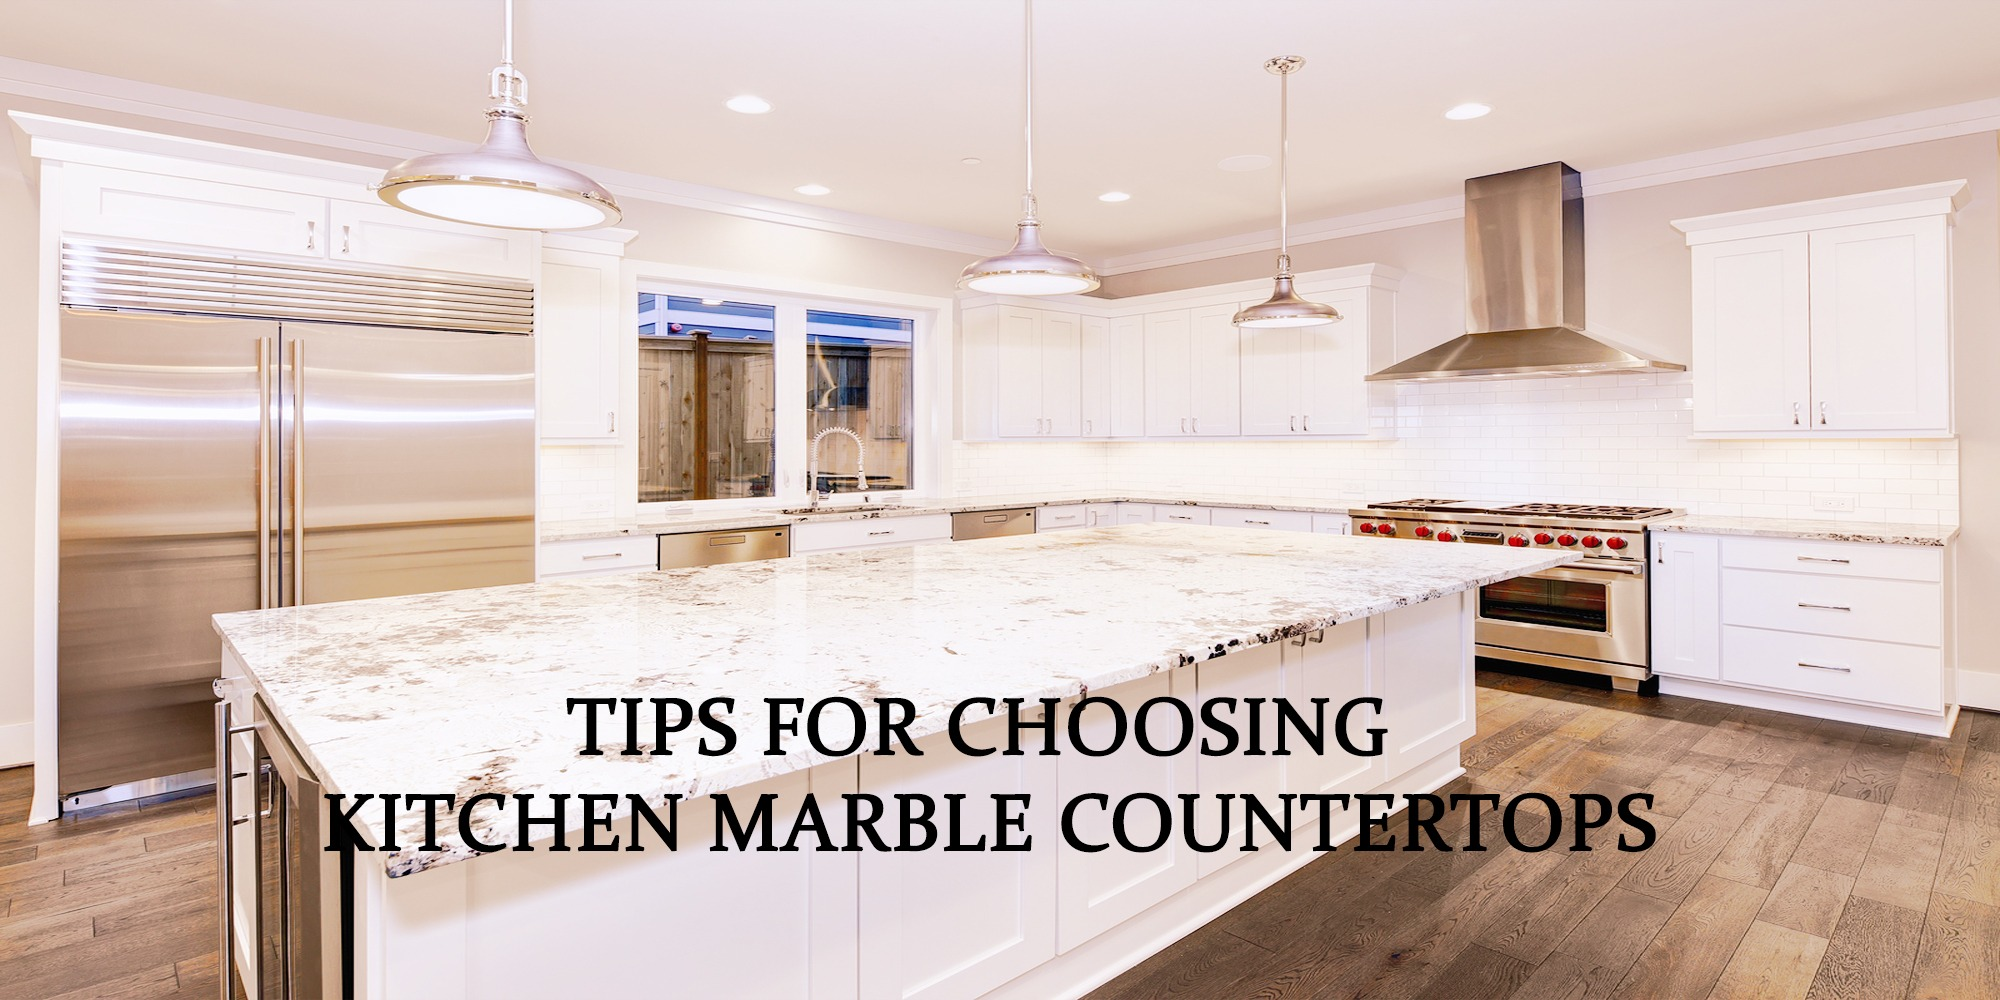 Tips for Choosing Kitchen Marble Countertops